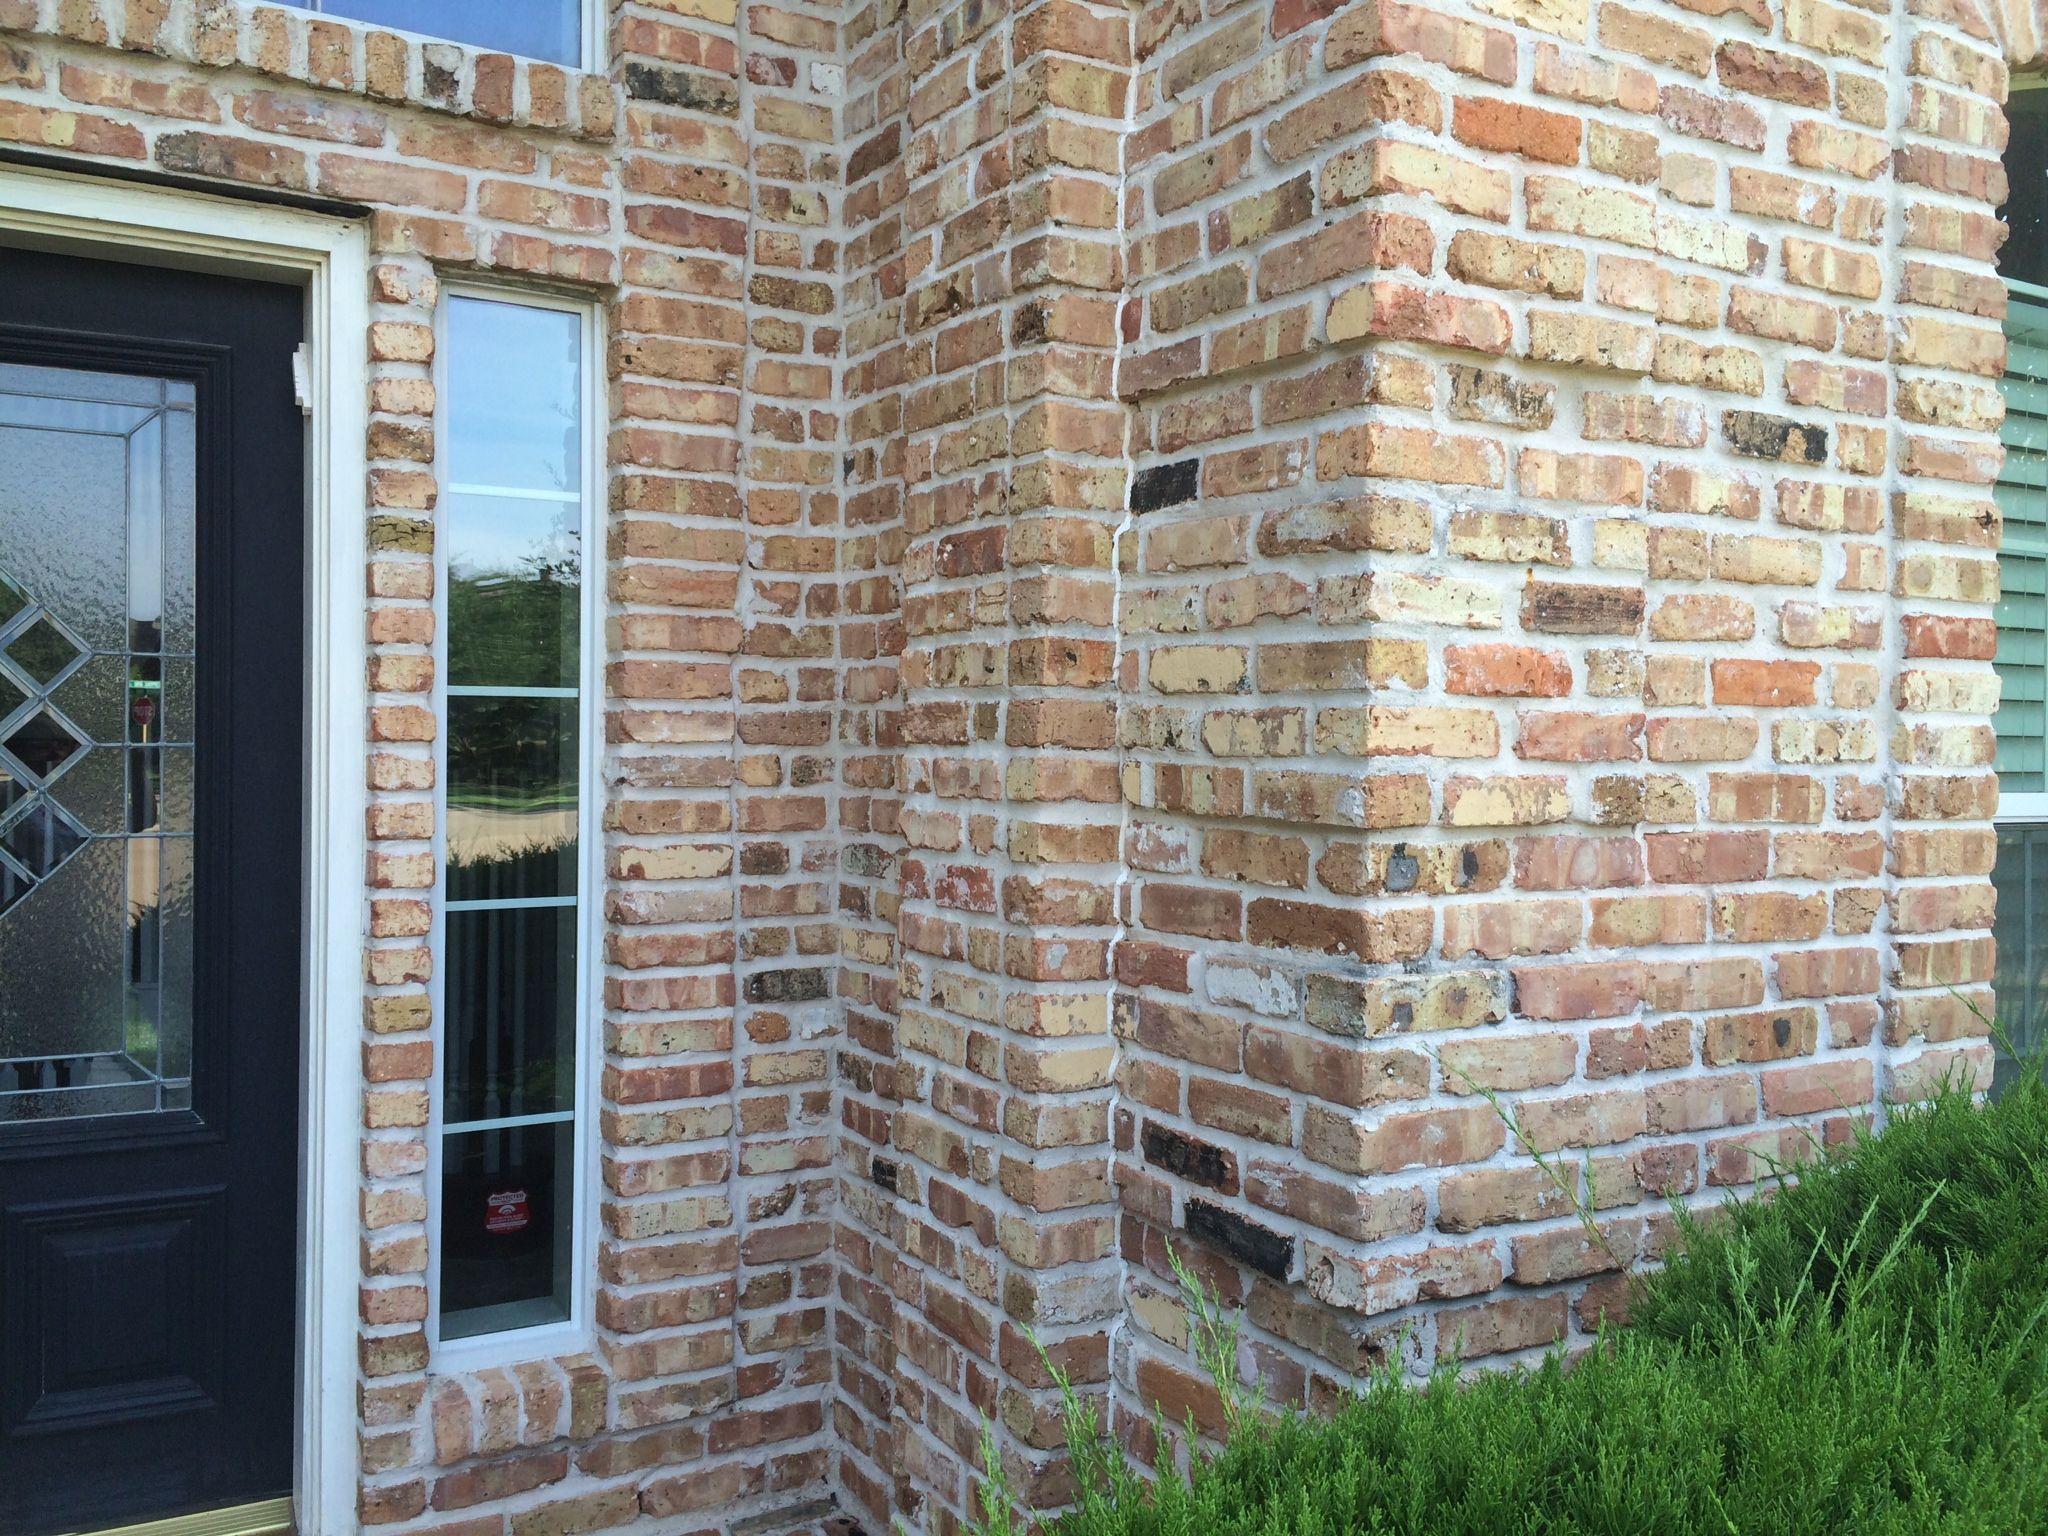 Old Chicago Brick House Backyard Pinterest Bricks Brick Veneer Wall And Fireplace Redo